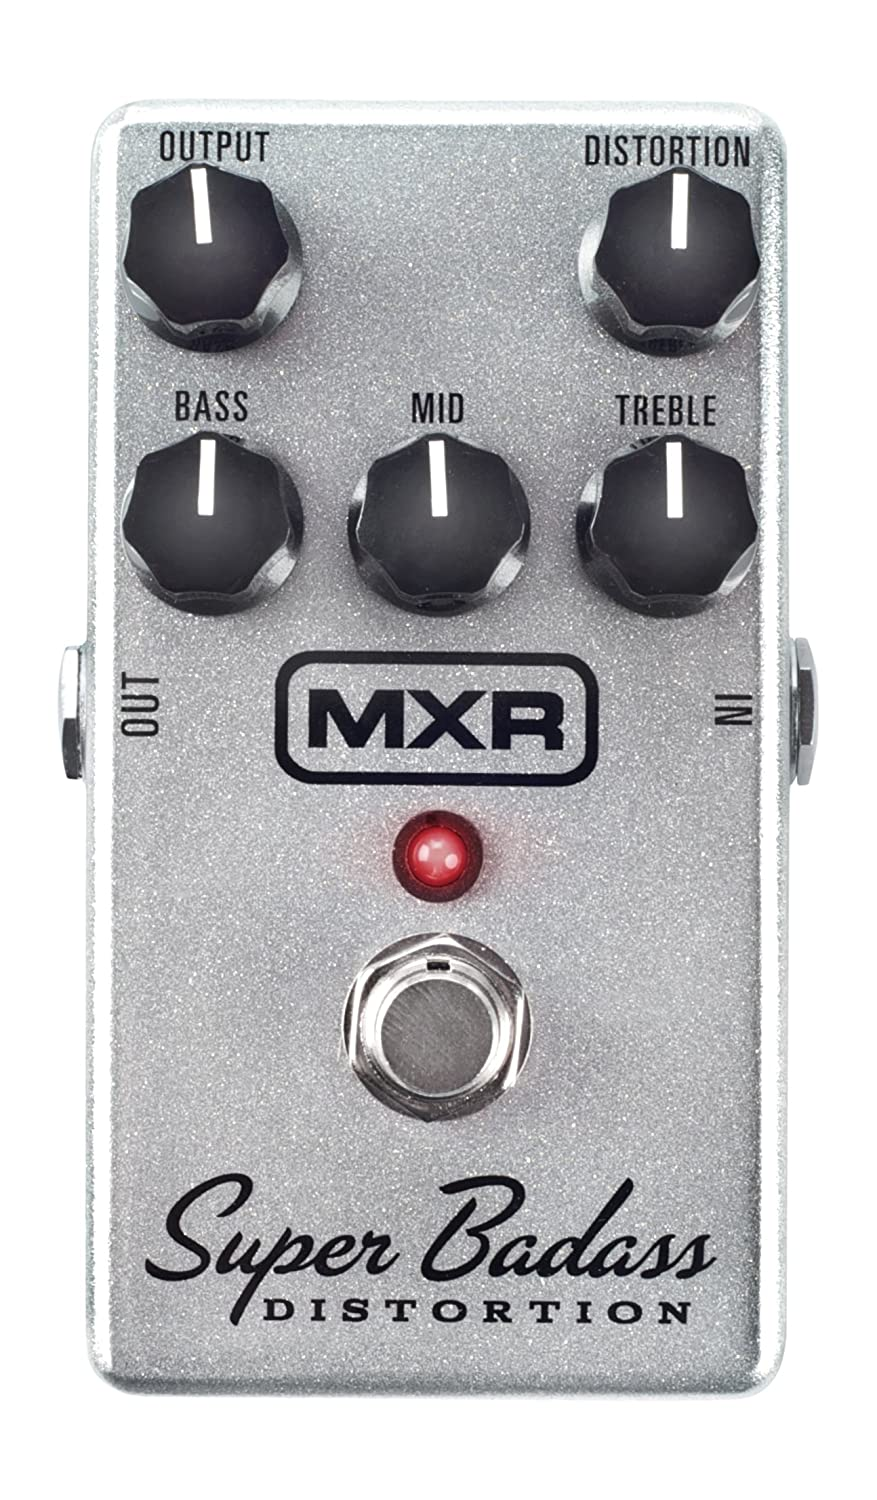 10 best distortion pedals in 2018 better be a good one guitar based. Black Bedroom Furniture Sets. Home Design Ideas